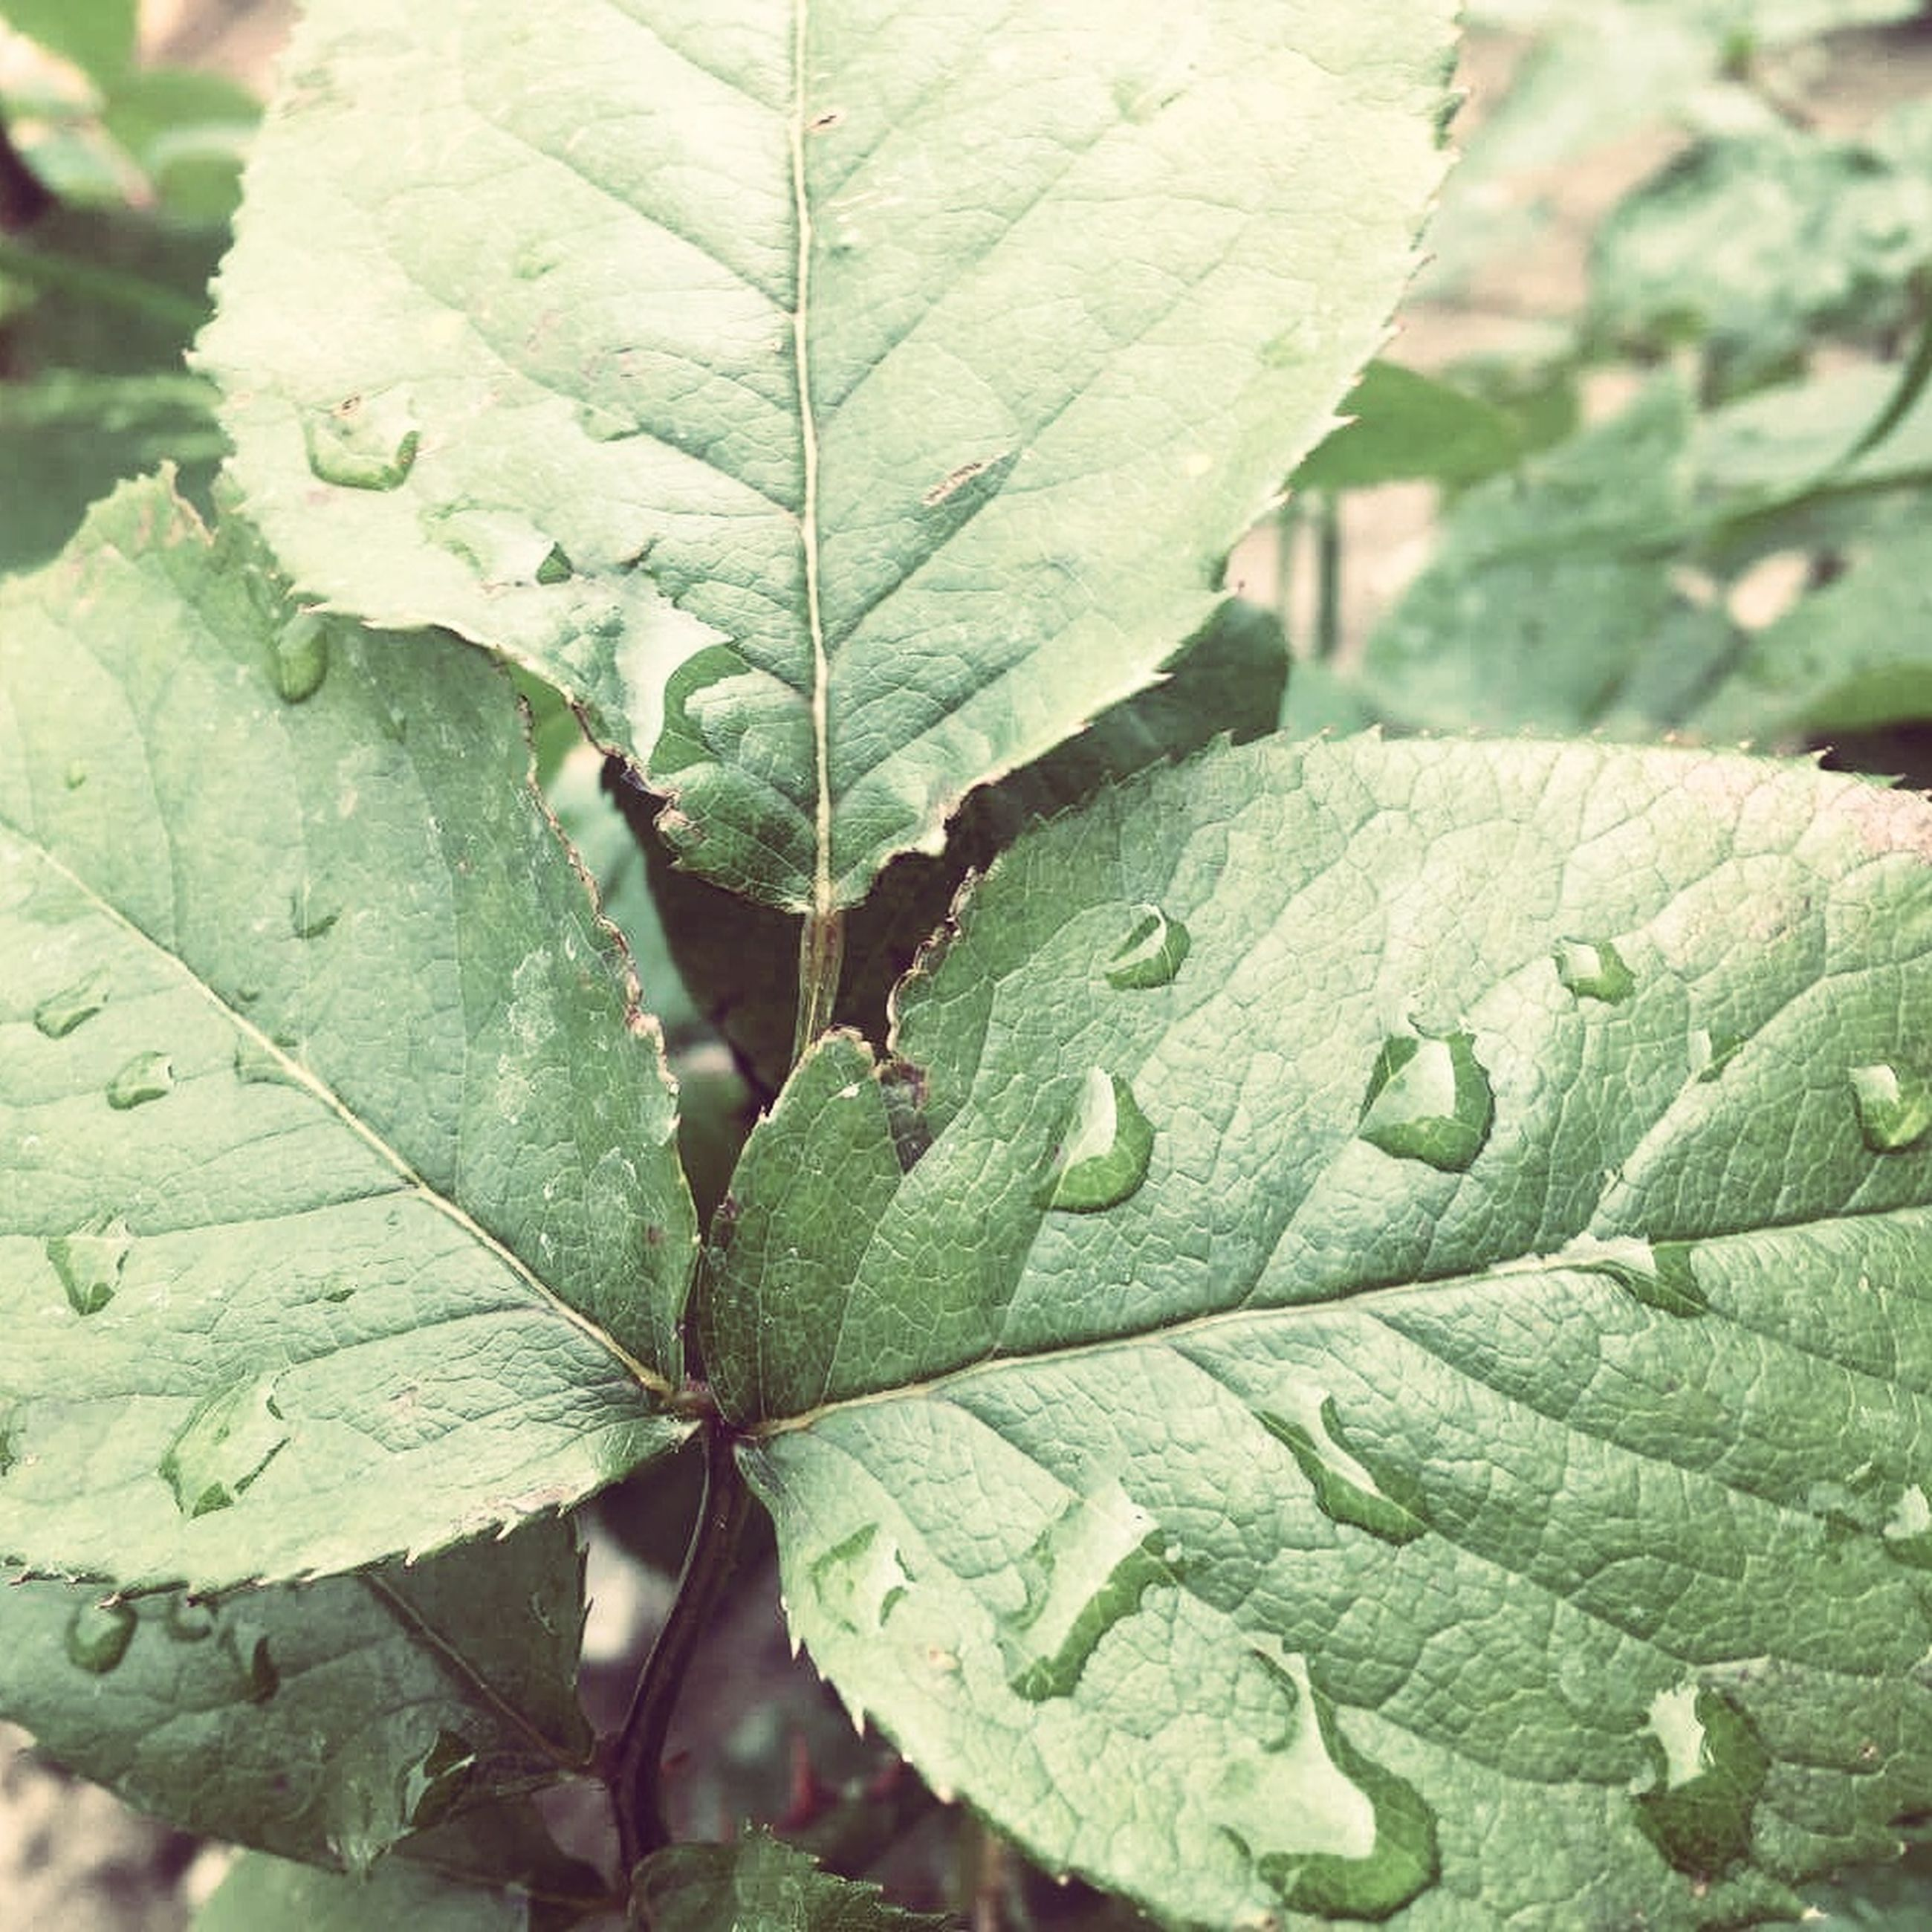 leaf, leaf vein, close-up, green color, growth, nature, drop, focus on foreground, leaves, natural pattern, wet, plant, water, fragility, beauty in nature, selective focus, season, freshness, day, outdoors